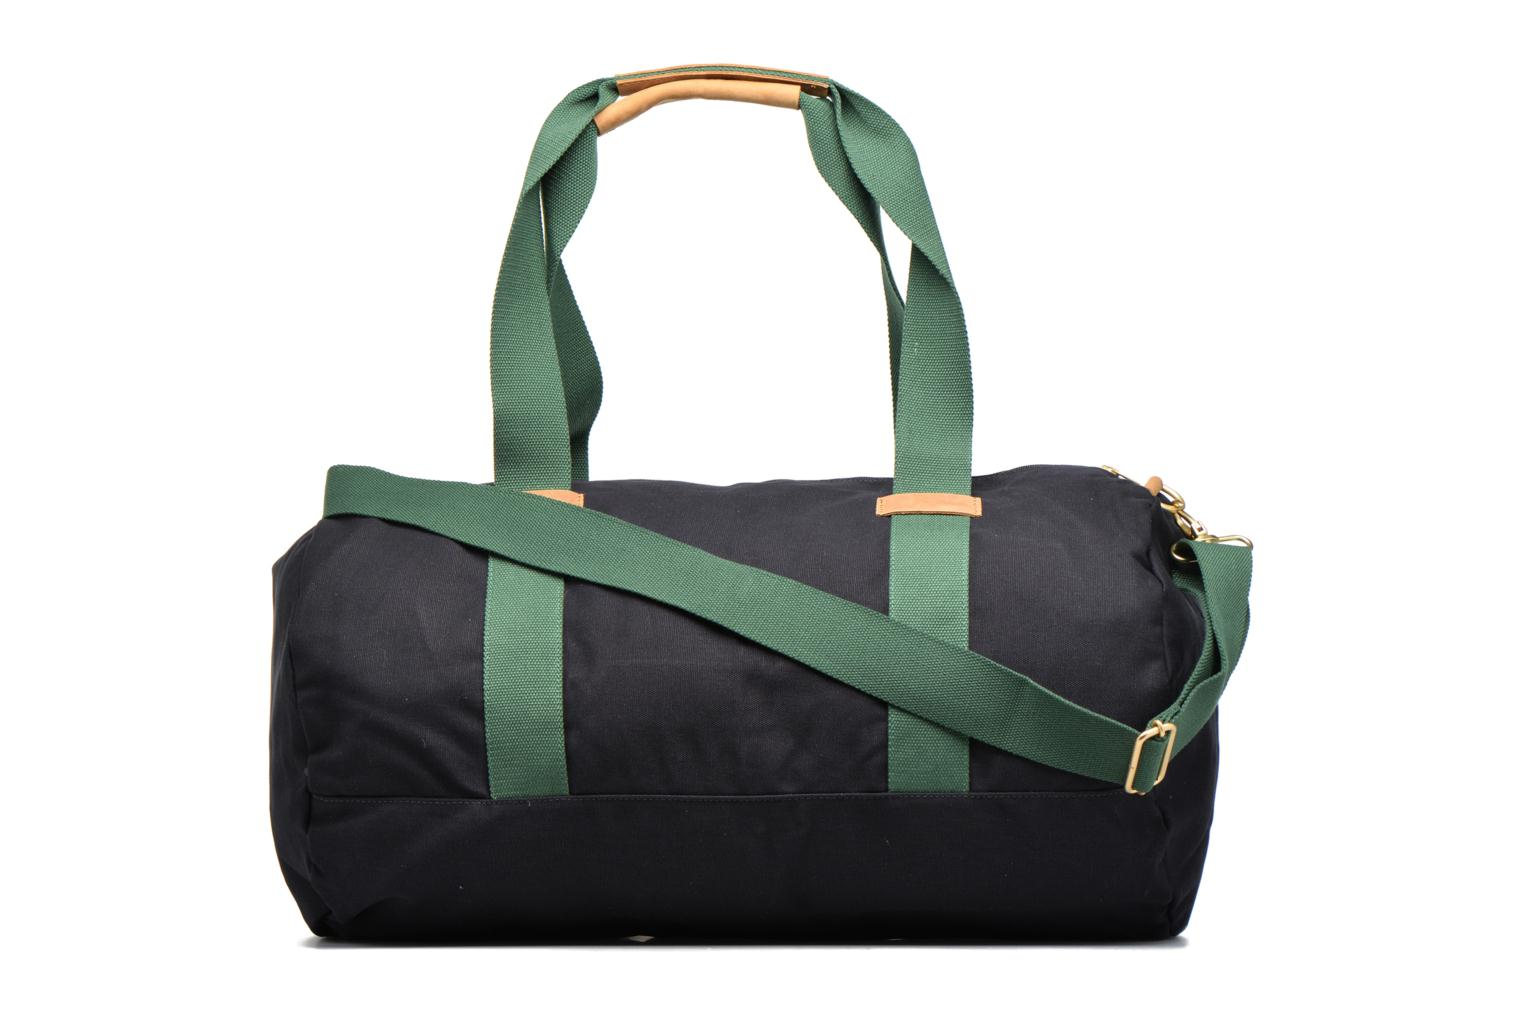 Big Duffle Set et Match Cotton Navy/dark green